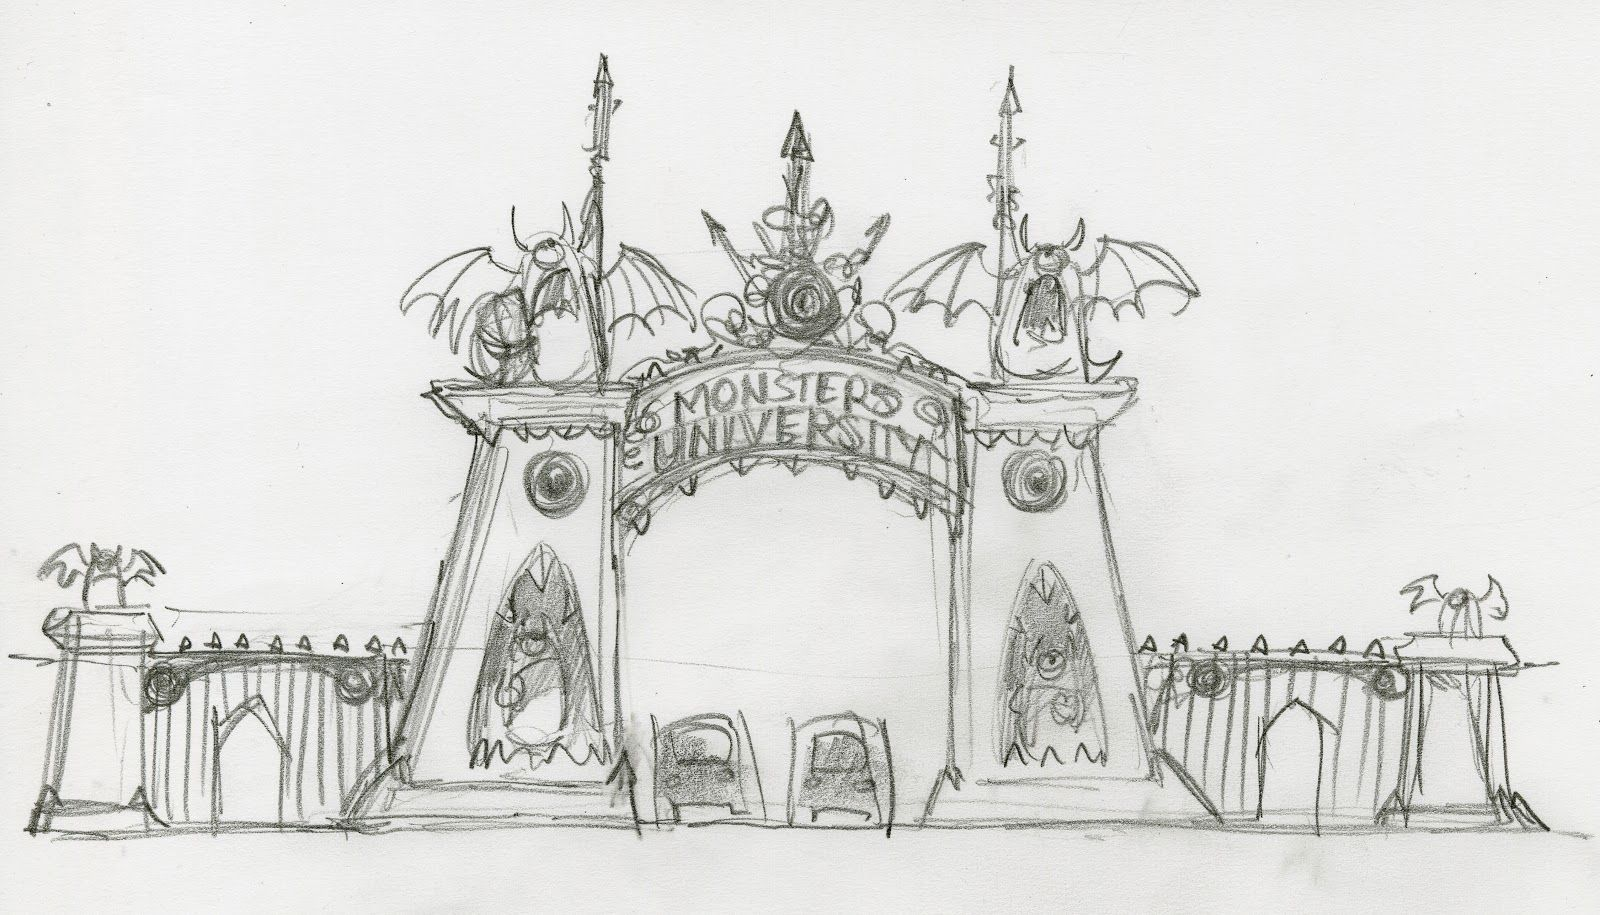 Monsters University concept art by John Nevarez highlighting the faux teeth and eyes blended into the shape language of the architecture